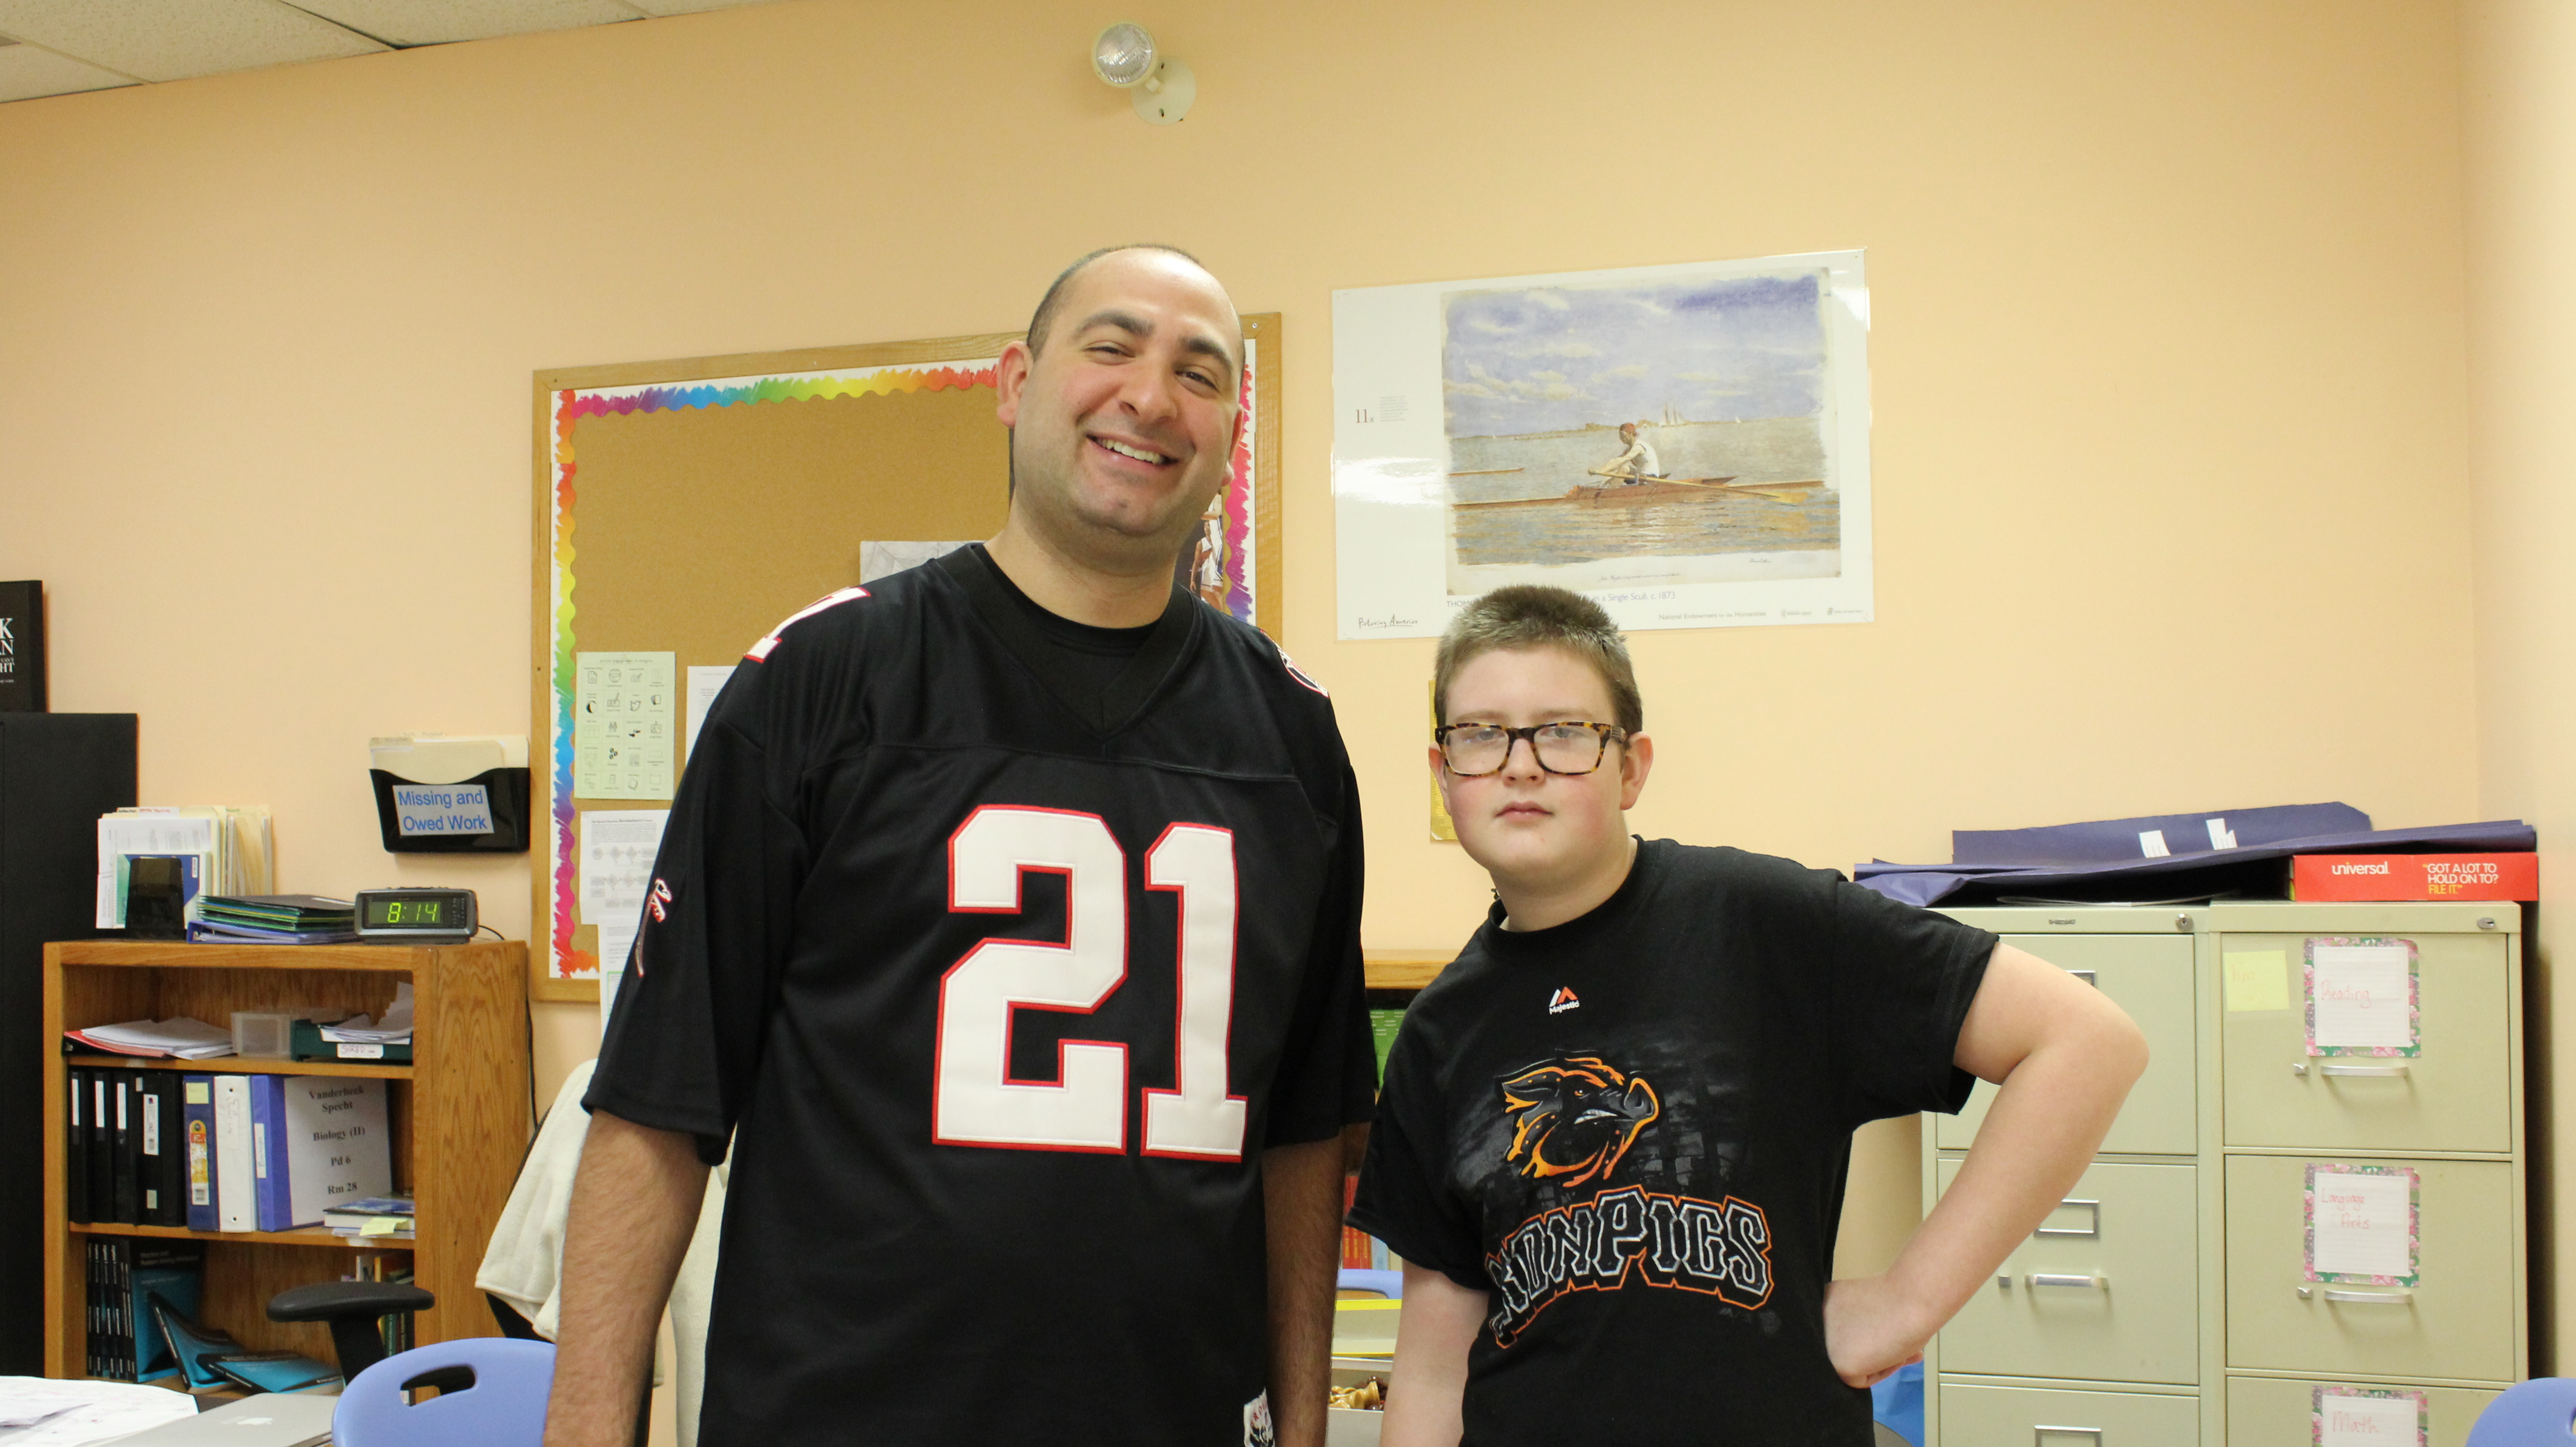 Student and teacher wearing sports jersey